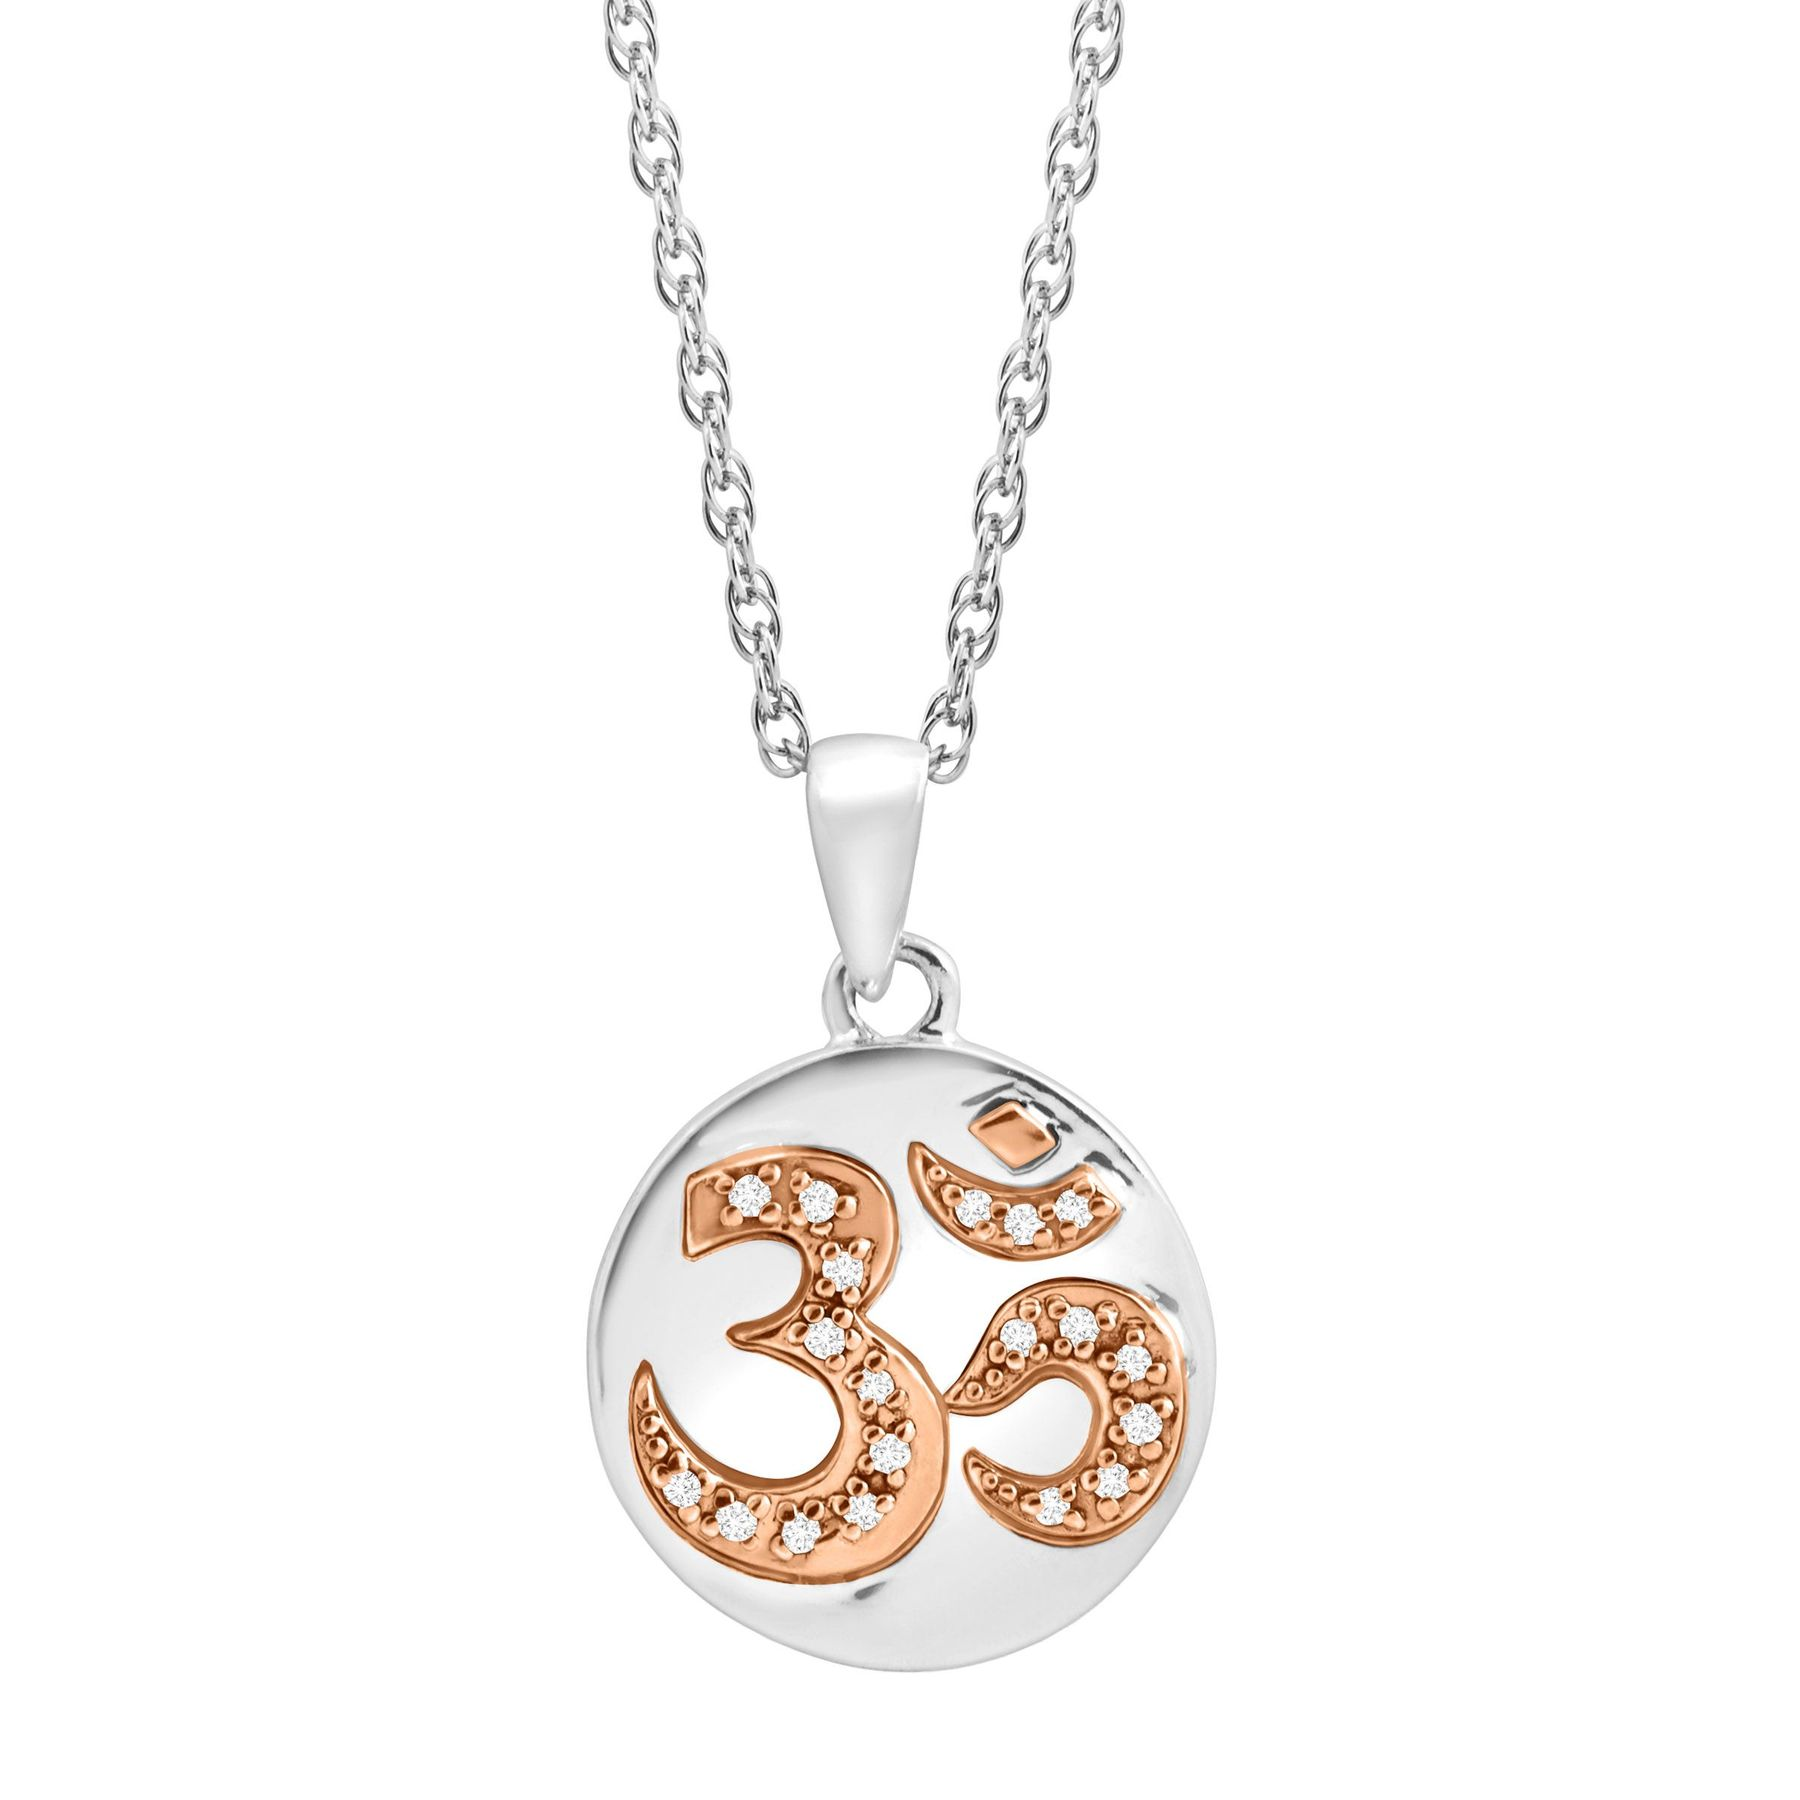 Om Symbol Pendant With Diamonds In Sterling Silver 14k Rose Gold